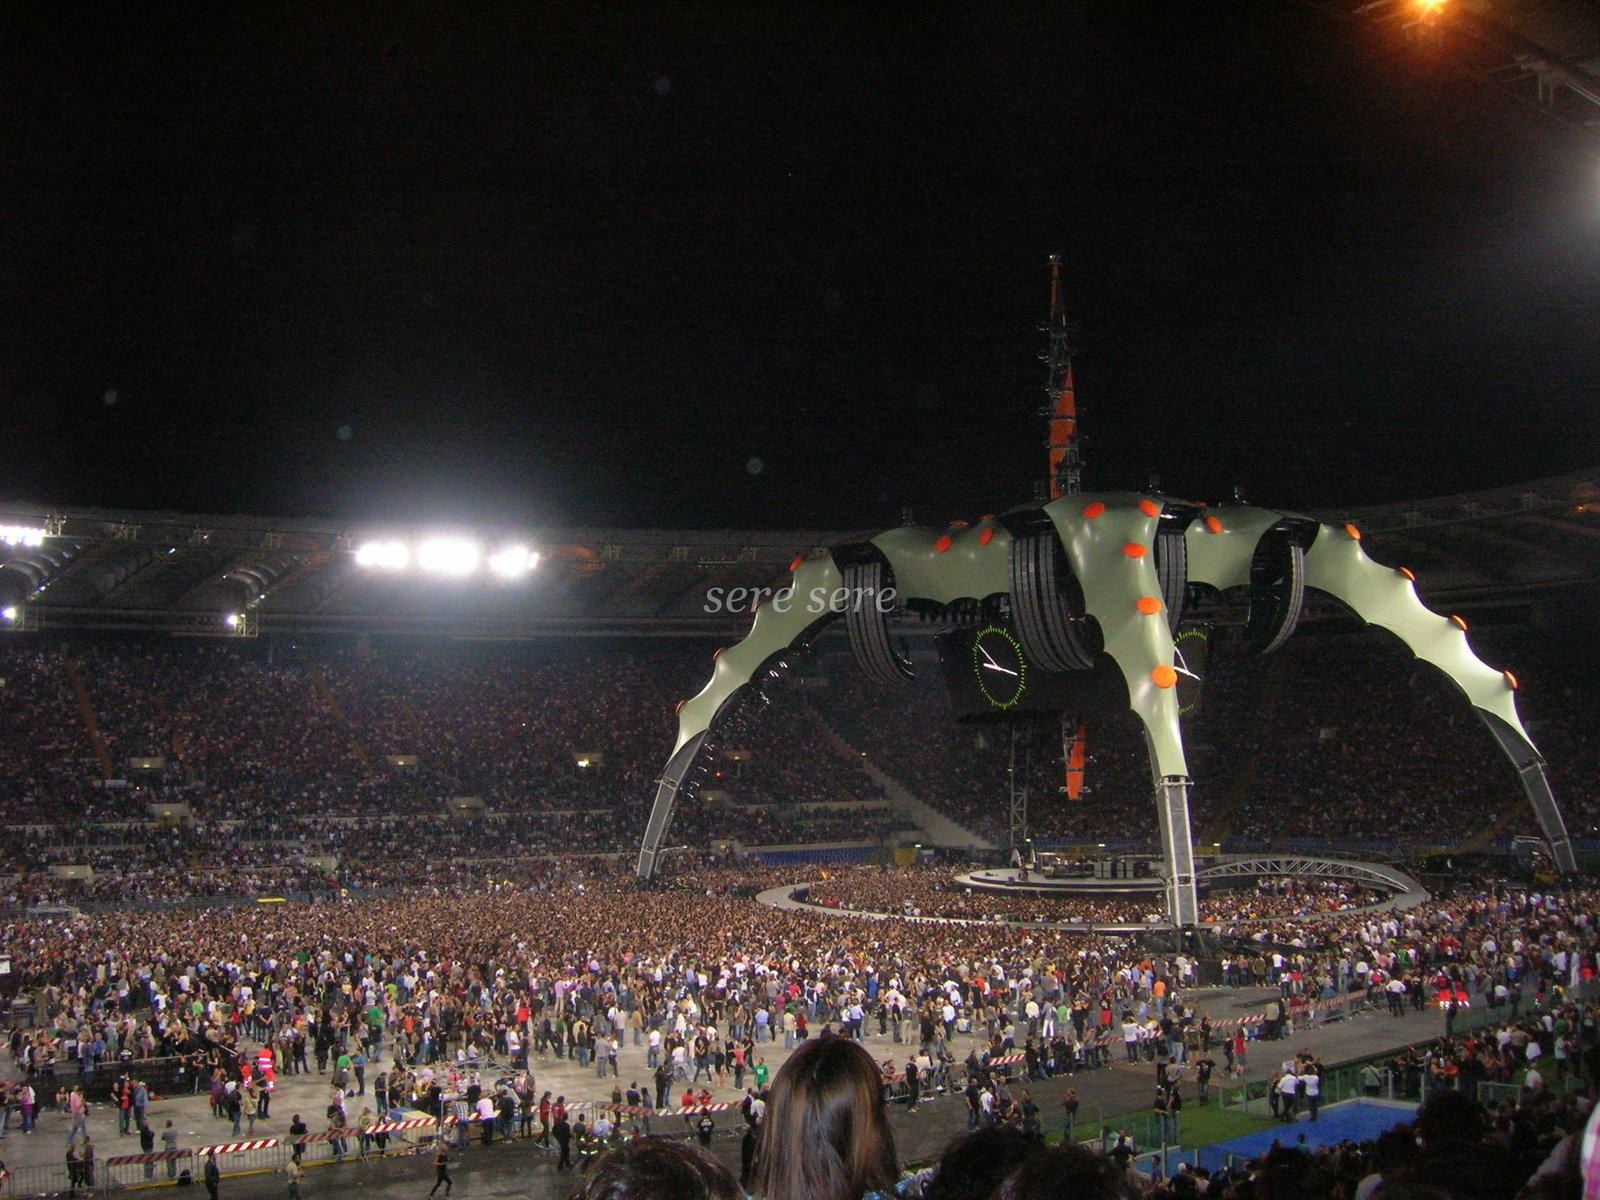 Waitin' for U2 live in Rome 360 Tour